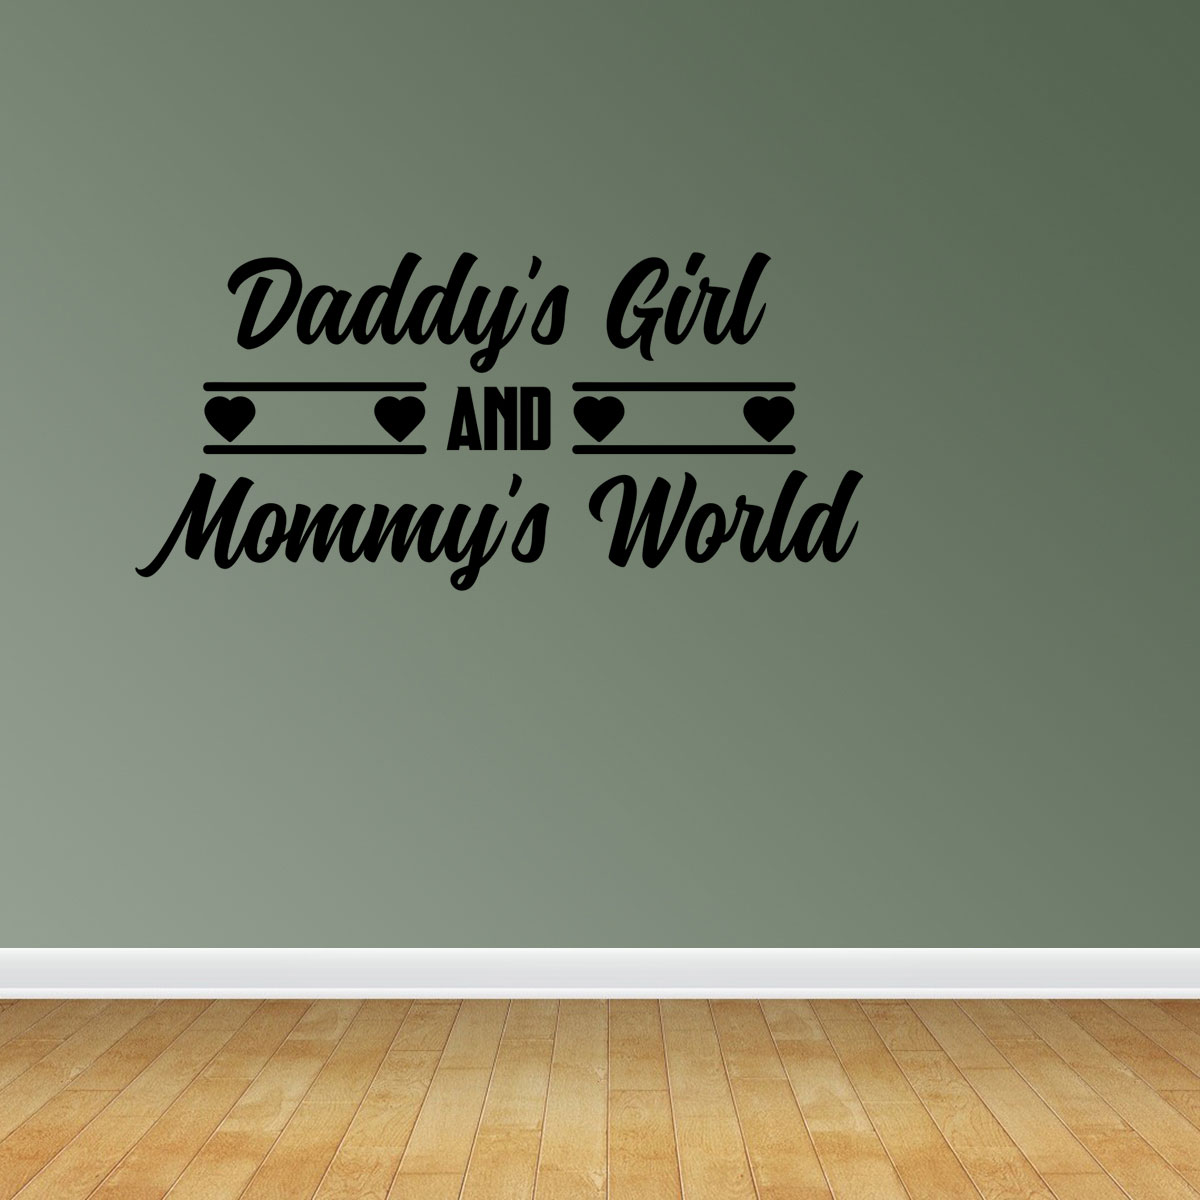 Daddy S Girl And Mommy S World Wall Decal Sticker Mural Home Decor